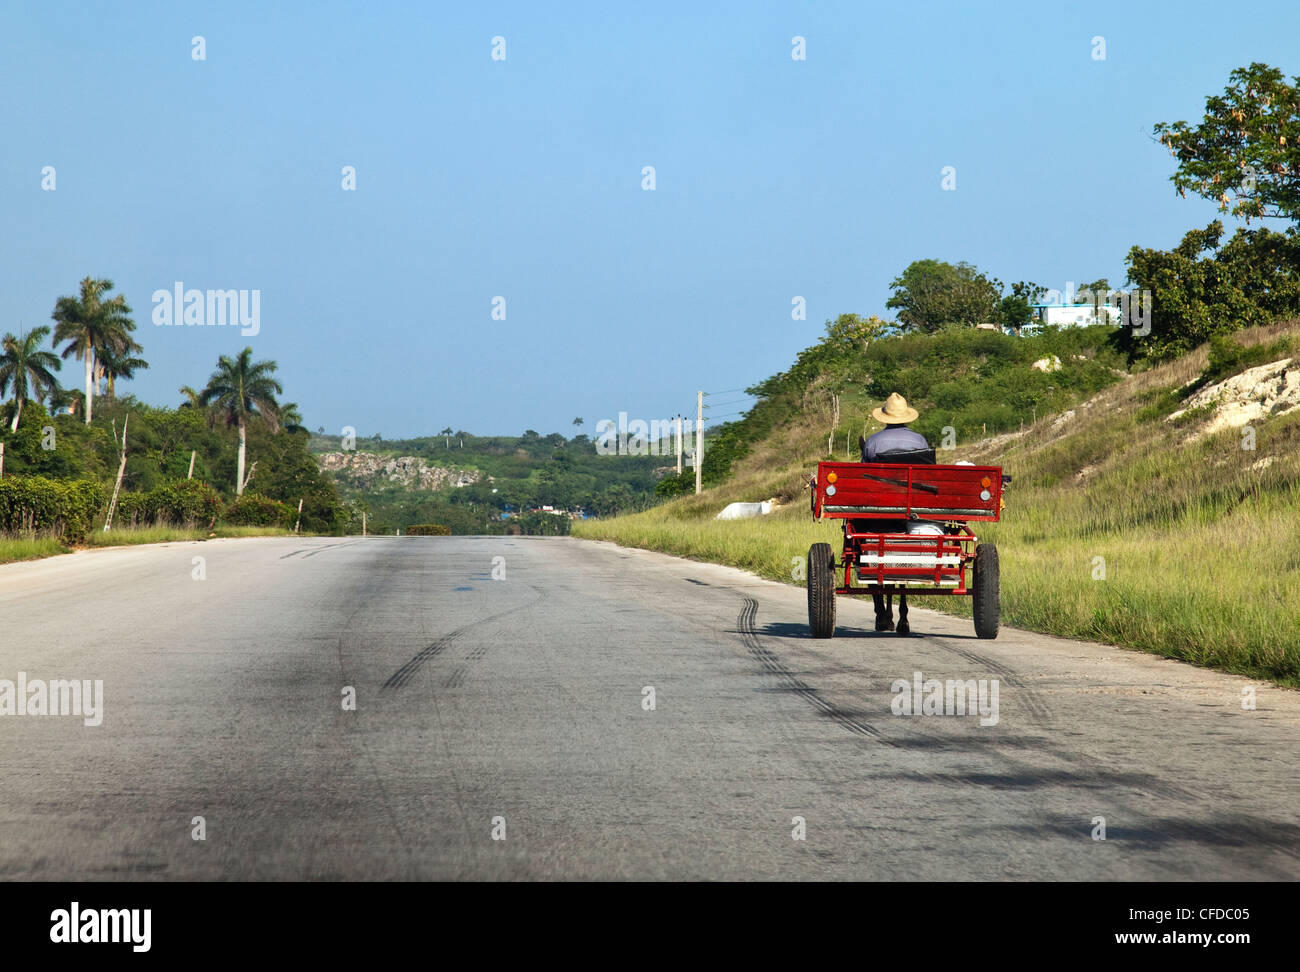 Man driving horse and cart on a wide deserted country road, Cuba, West Indies, Central America - Stock Image